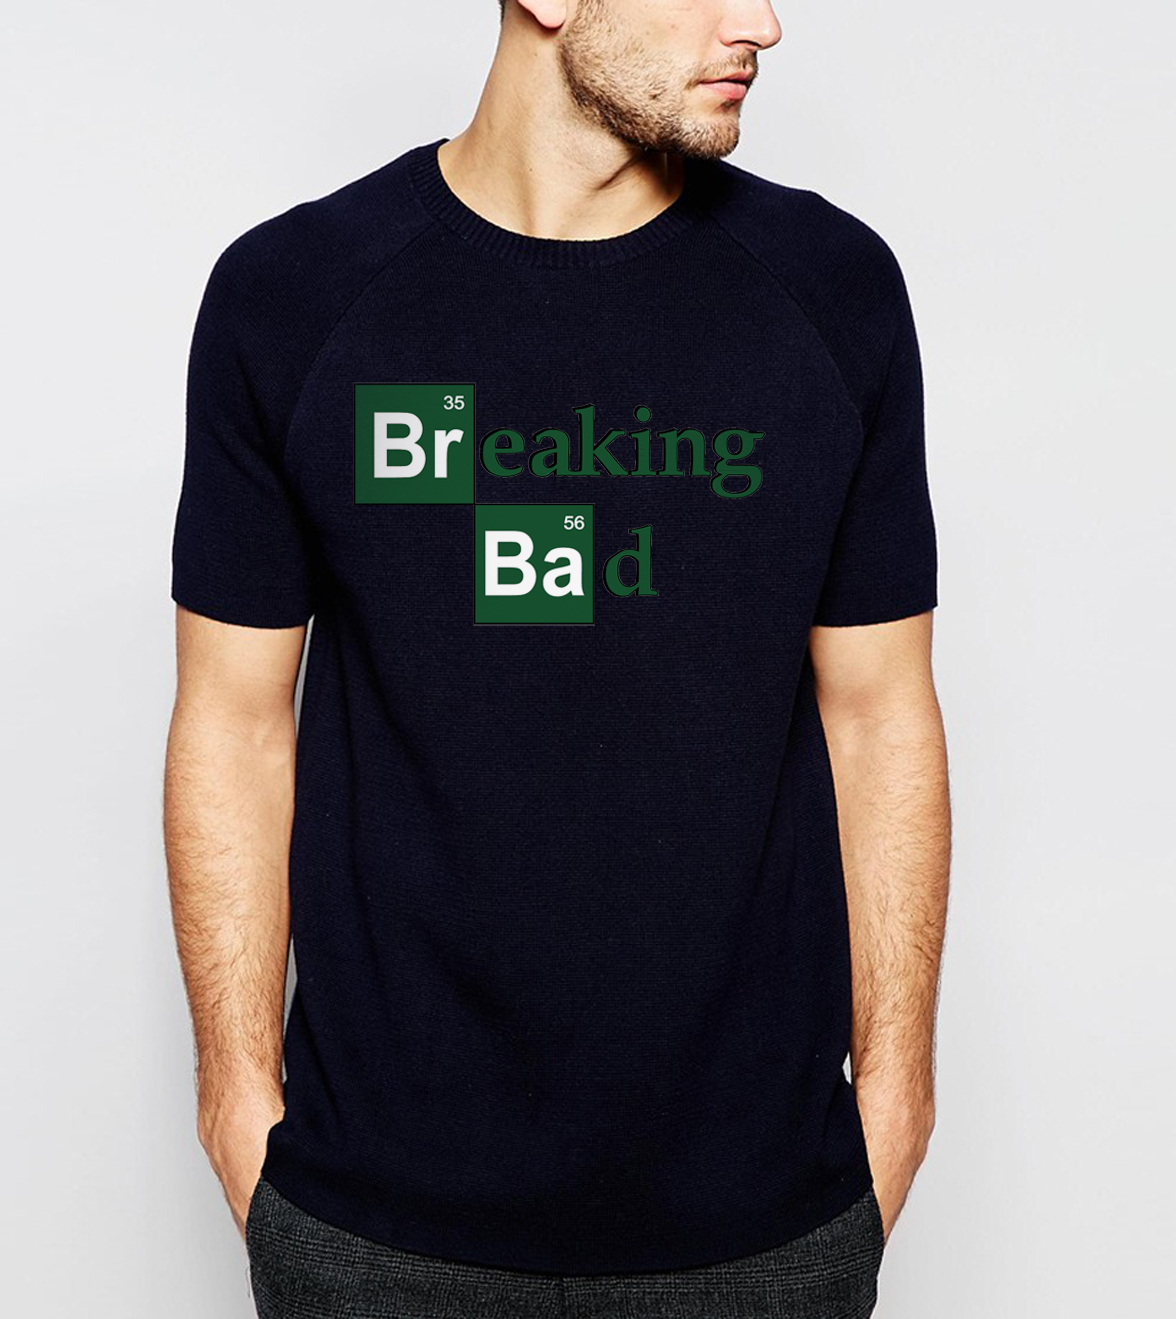 Hot Sale Breaking Bad Heisenberg Men   T     Shirts   2019 Summer Fashion Casual 100% Cotton   T  -  Shirt   Streetwear Slim Fit Top Tees S-3XL